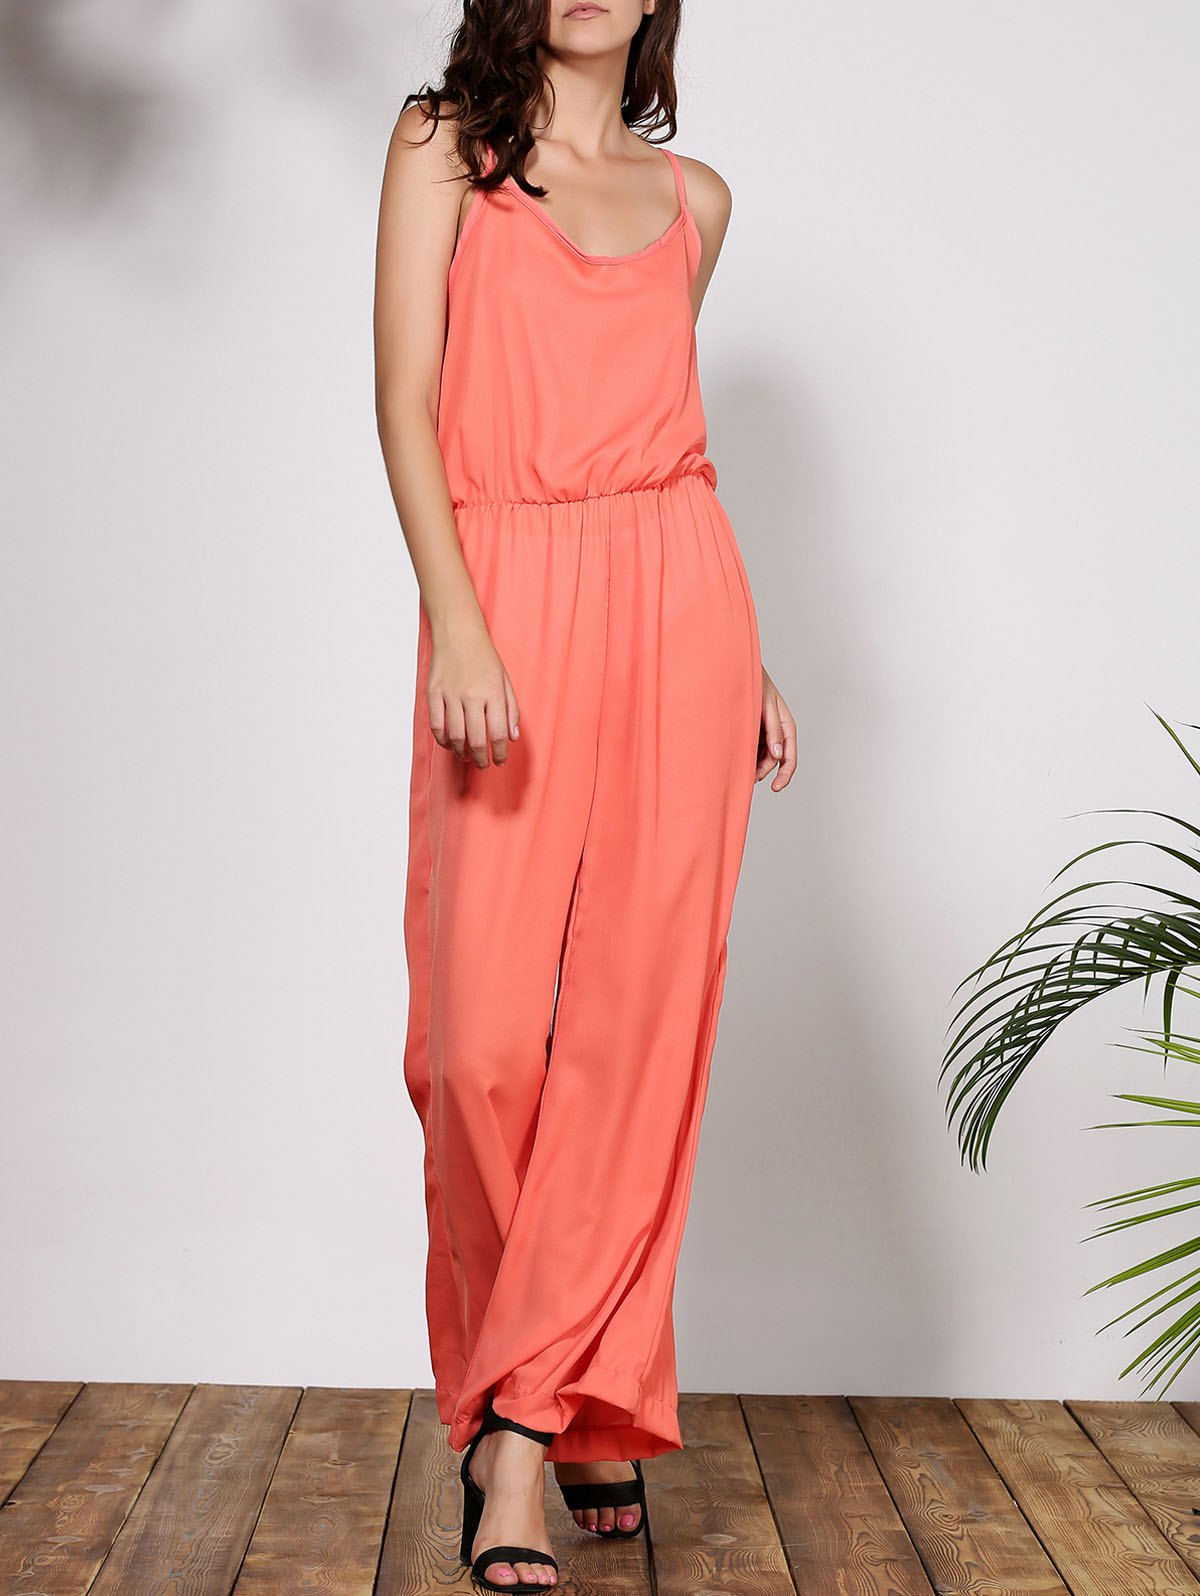 Stylish Solid Color Spaghetti Strap Women's Baggy Jumpsuit - ORANGE M